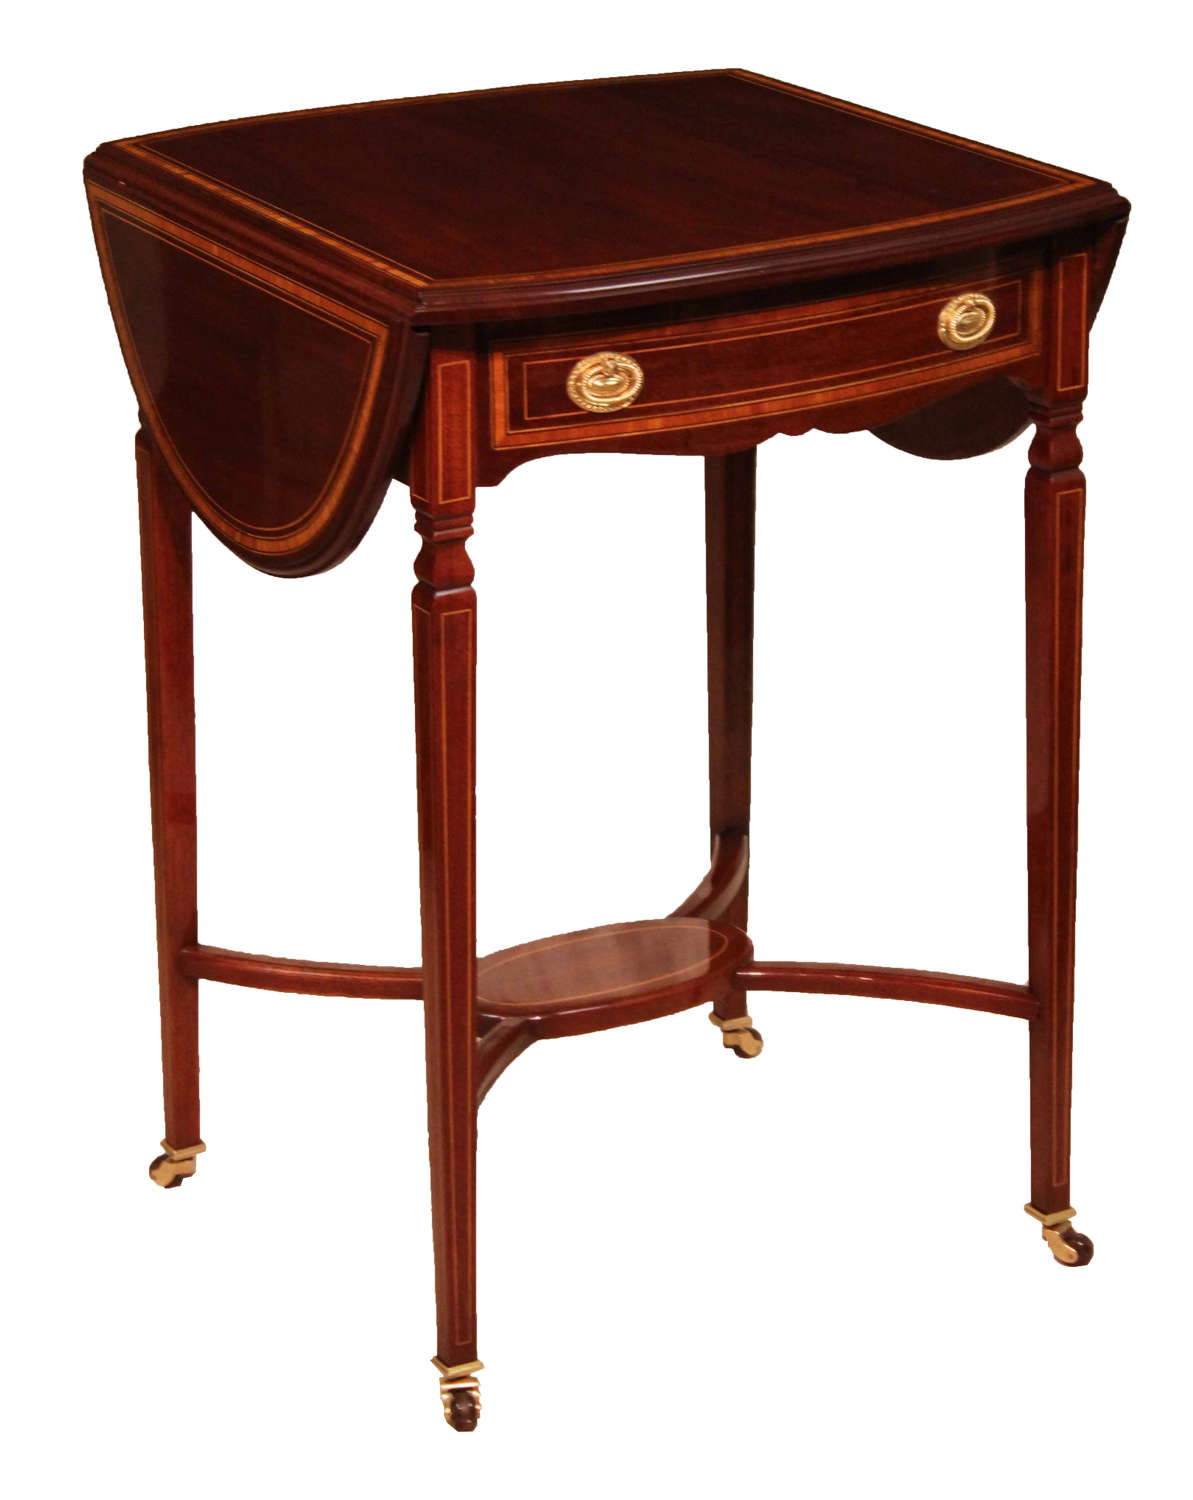 The Quality Edwardian Mahogany Inlaid Pembroke Table